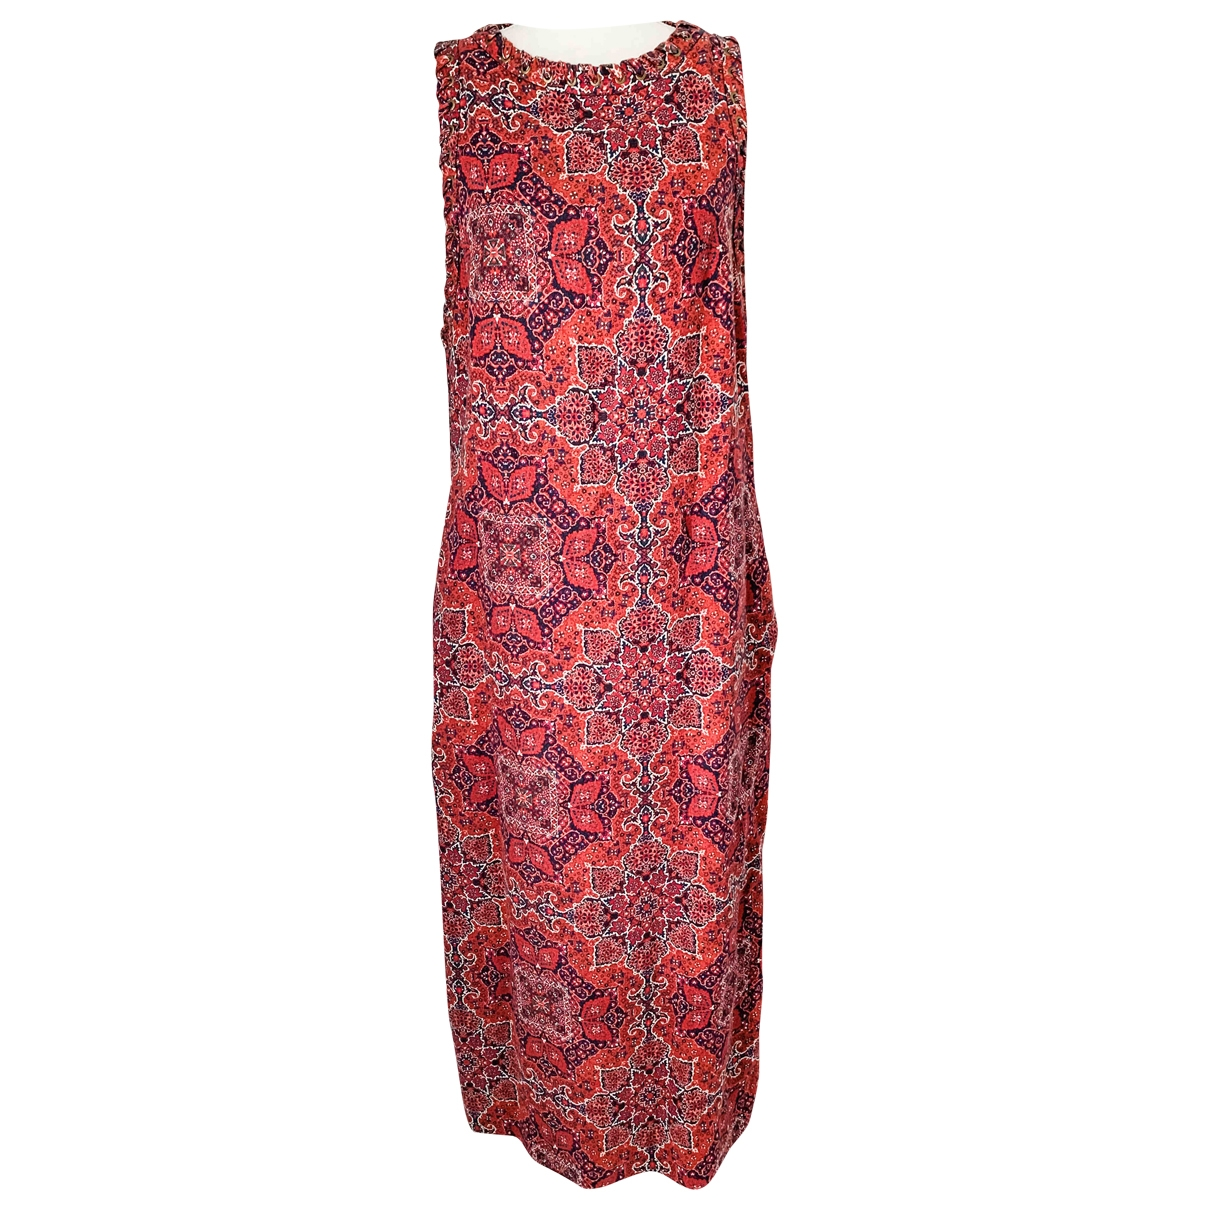 Zimmermann \N Red Cotton dress for Women 1 0-5